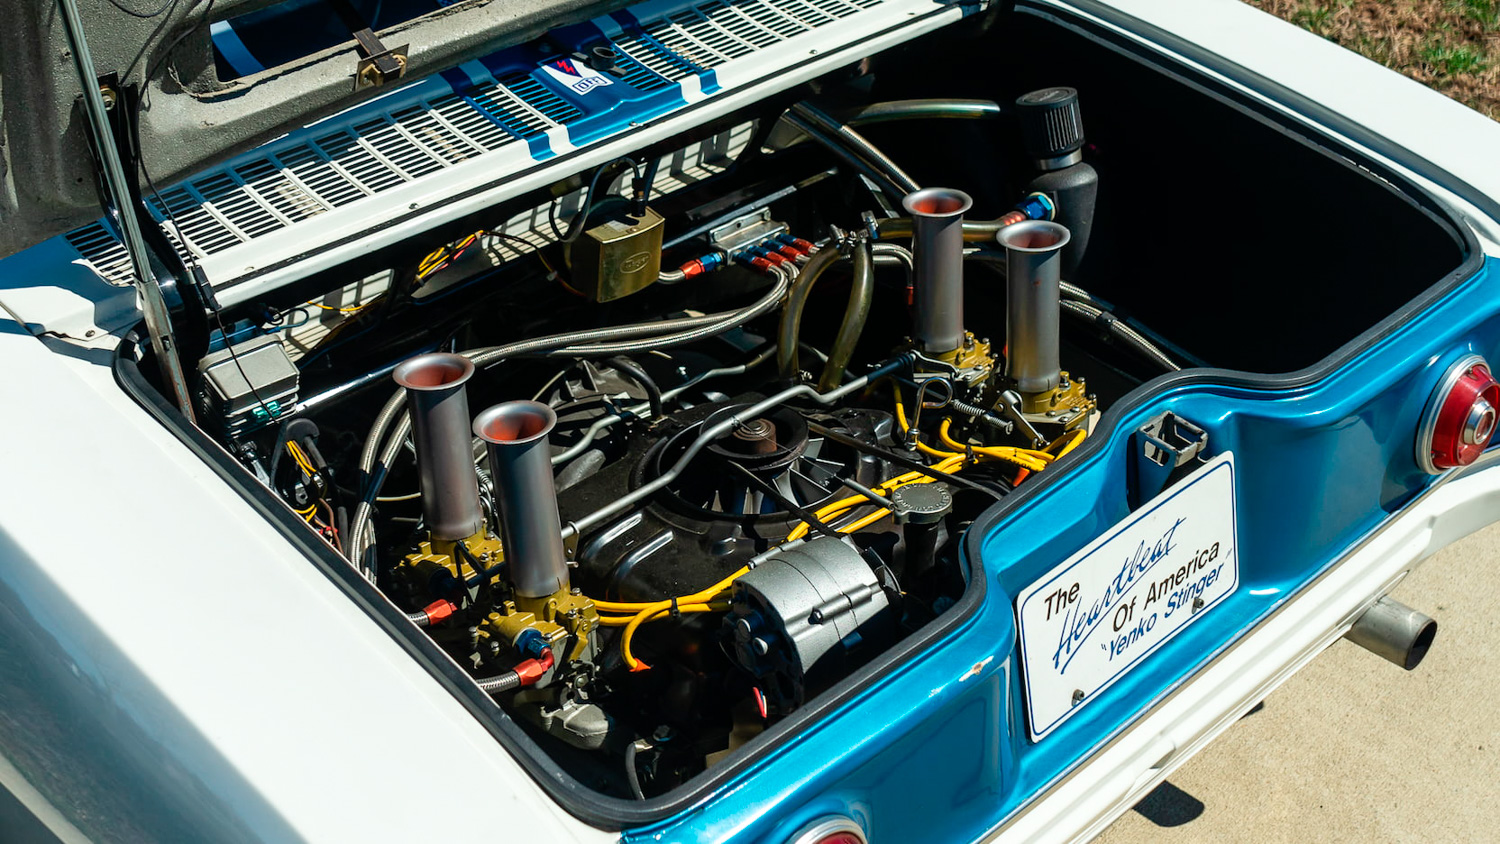 1966 Chevrolet Corvair Yenko Stinger engine